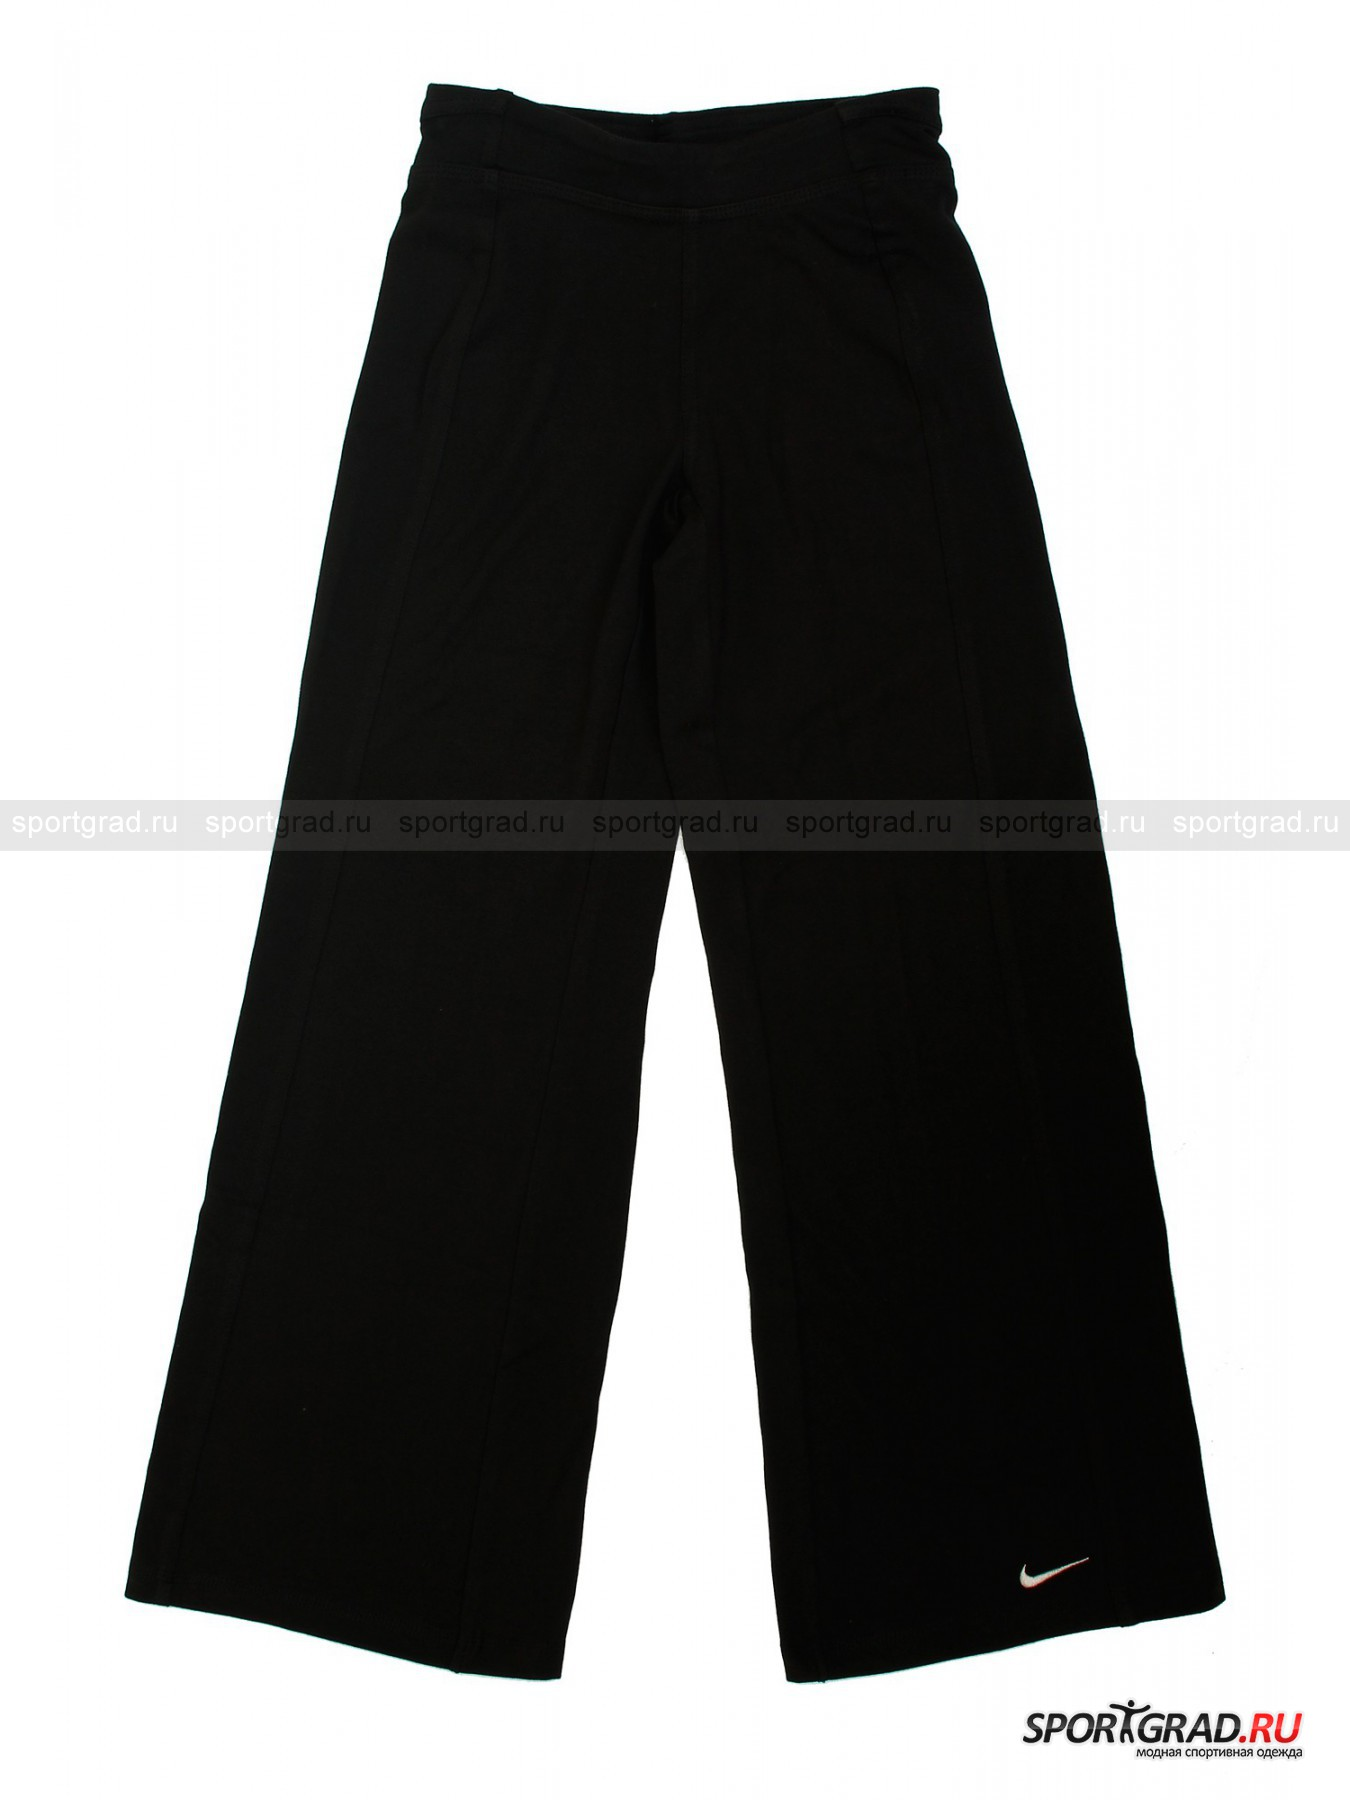 Брюки детские Training Stretch Pant NIKE от Спортград